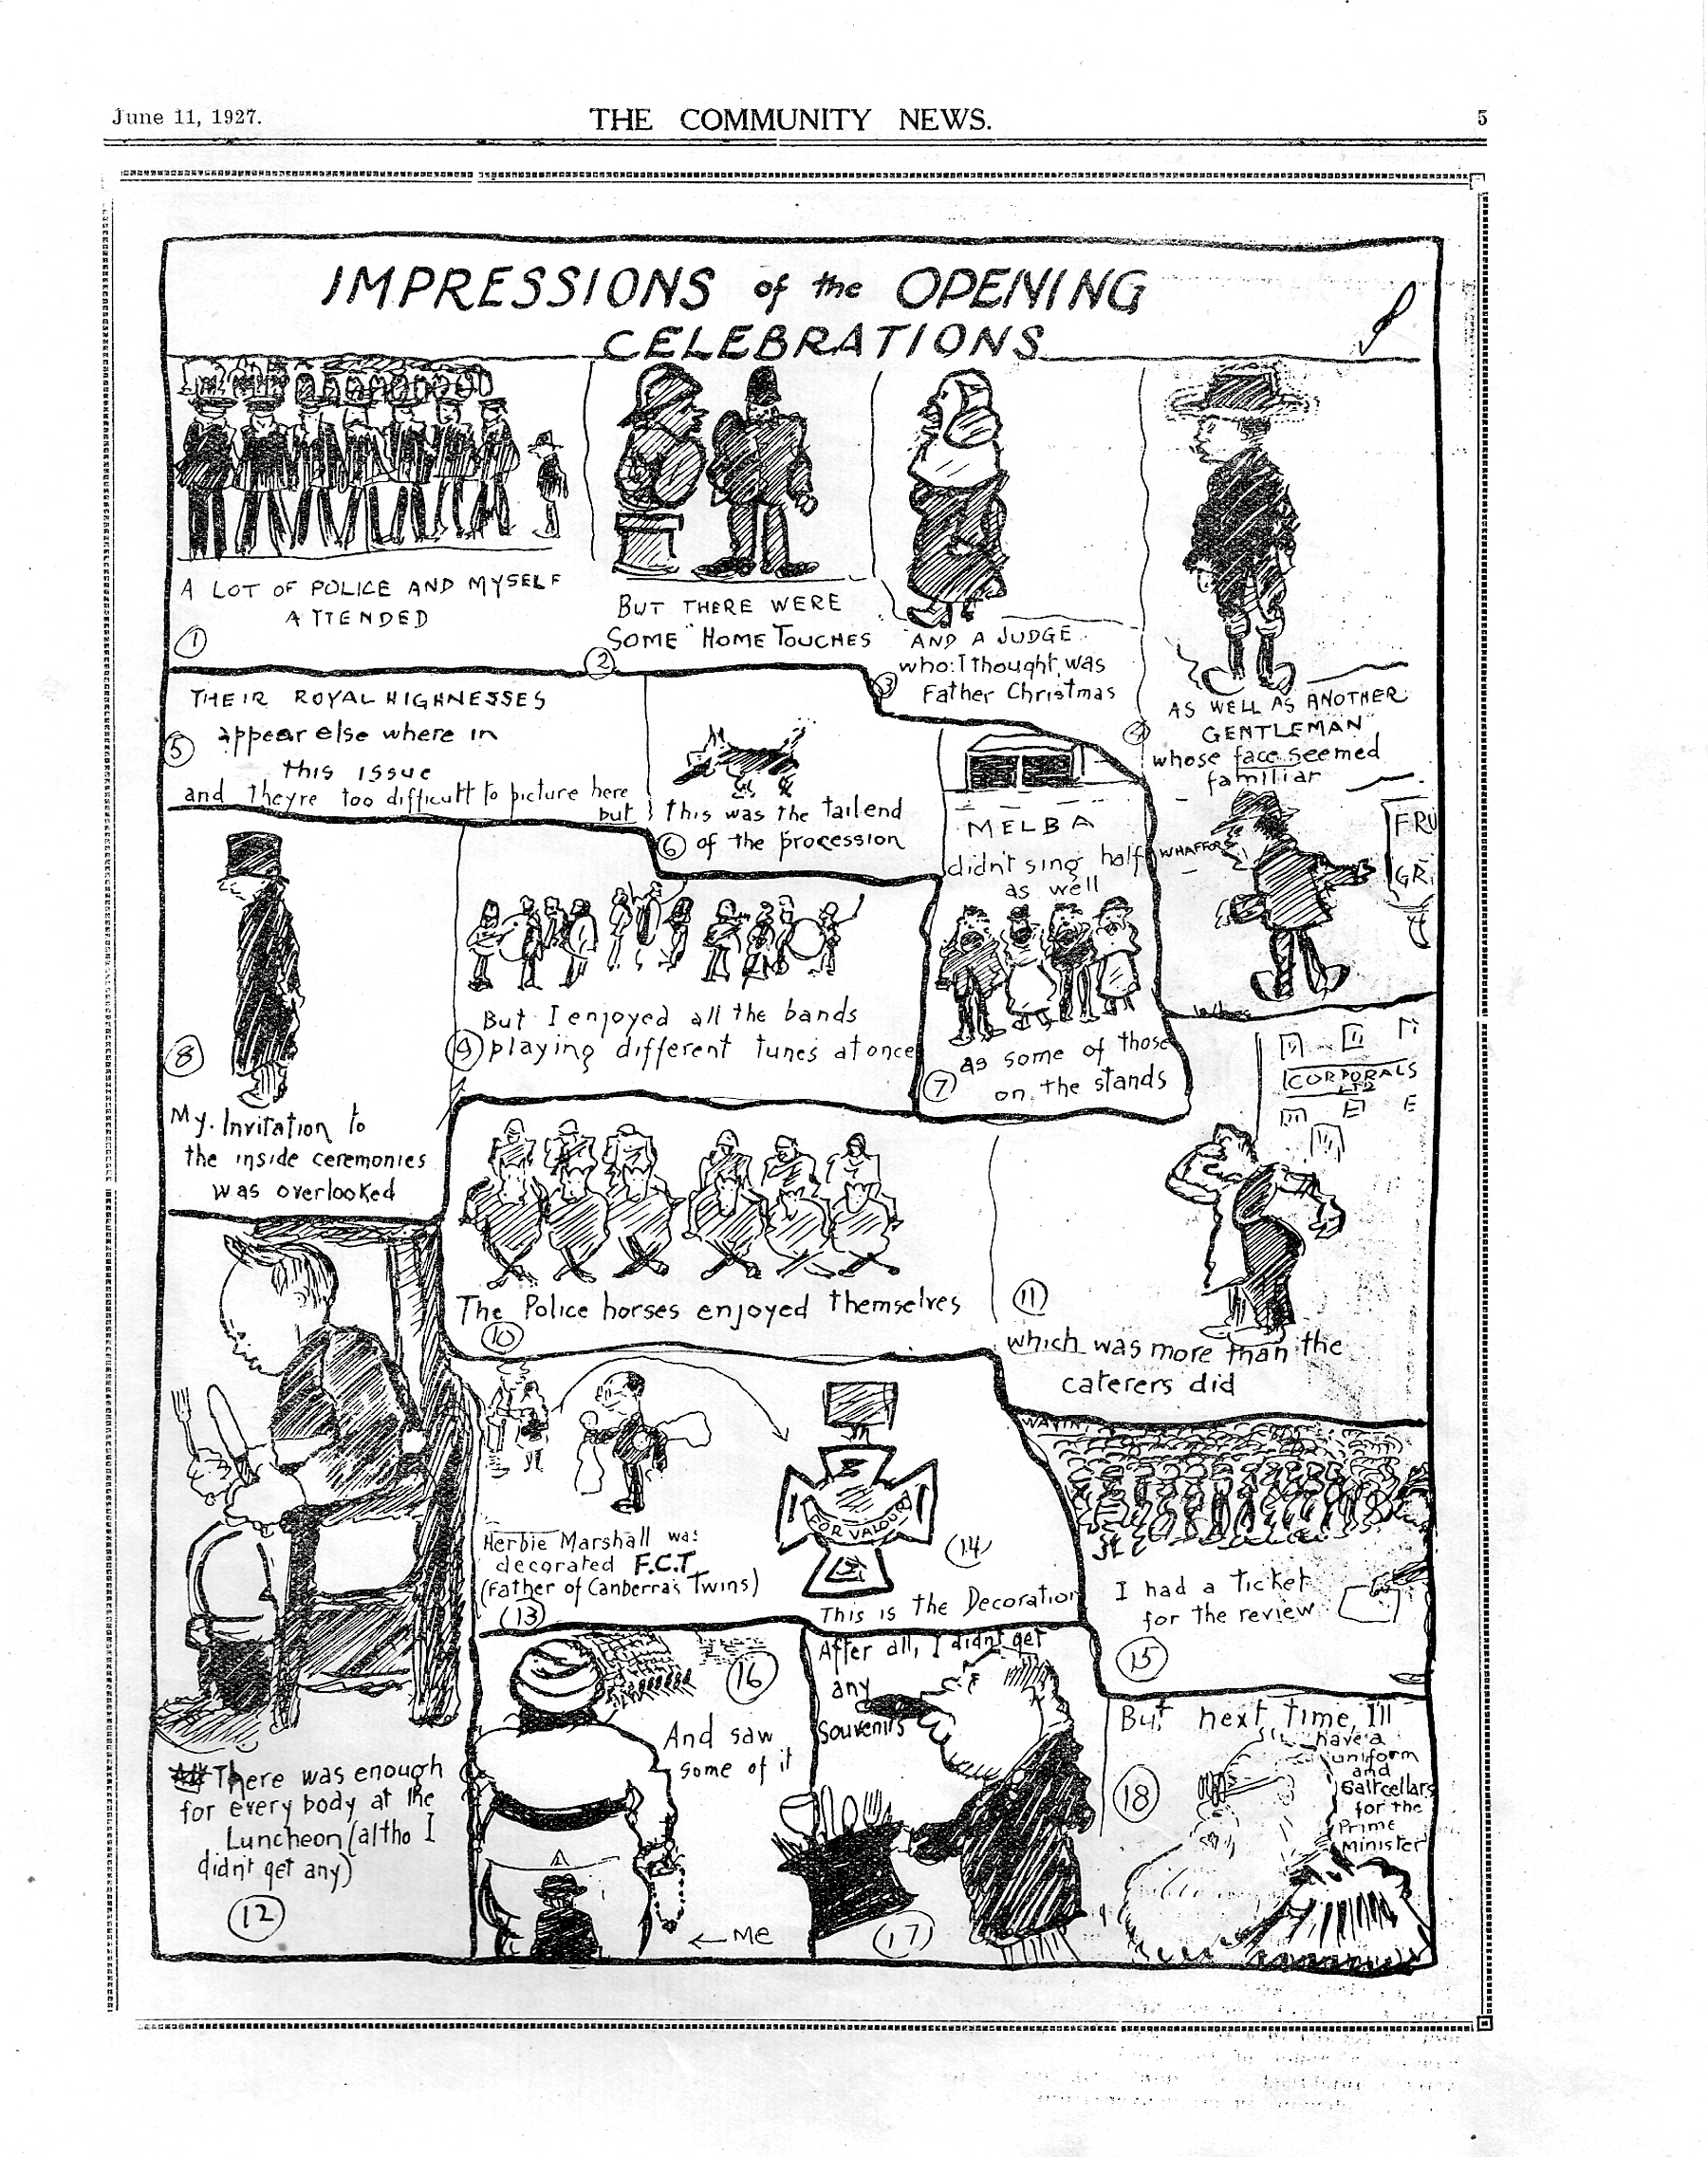 Canberra Community News cartoon 1927